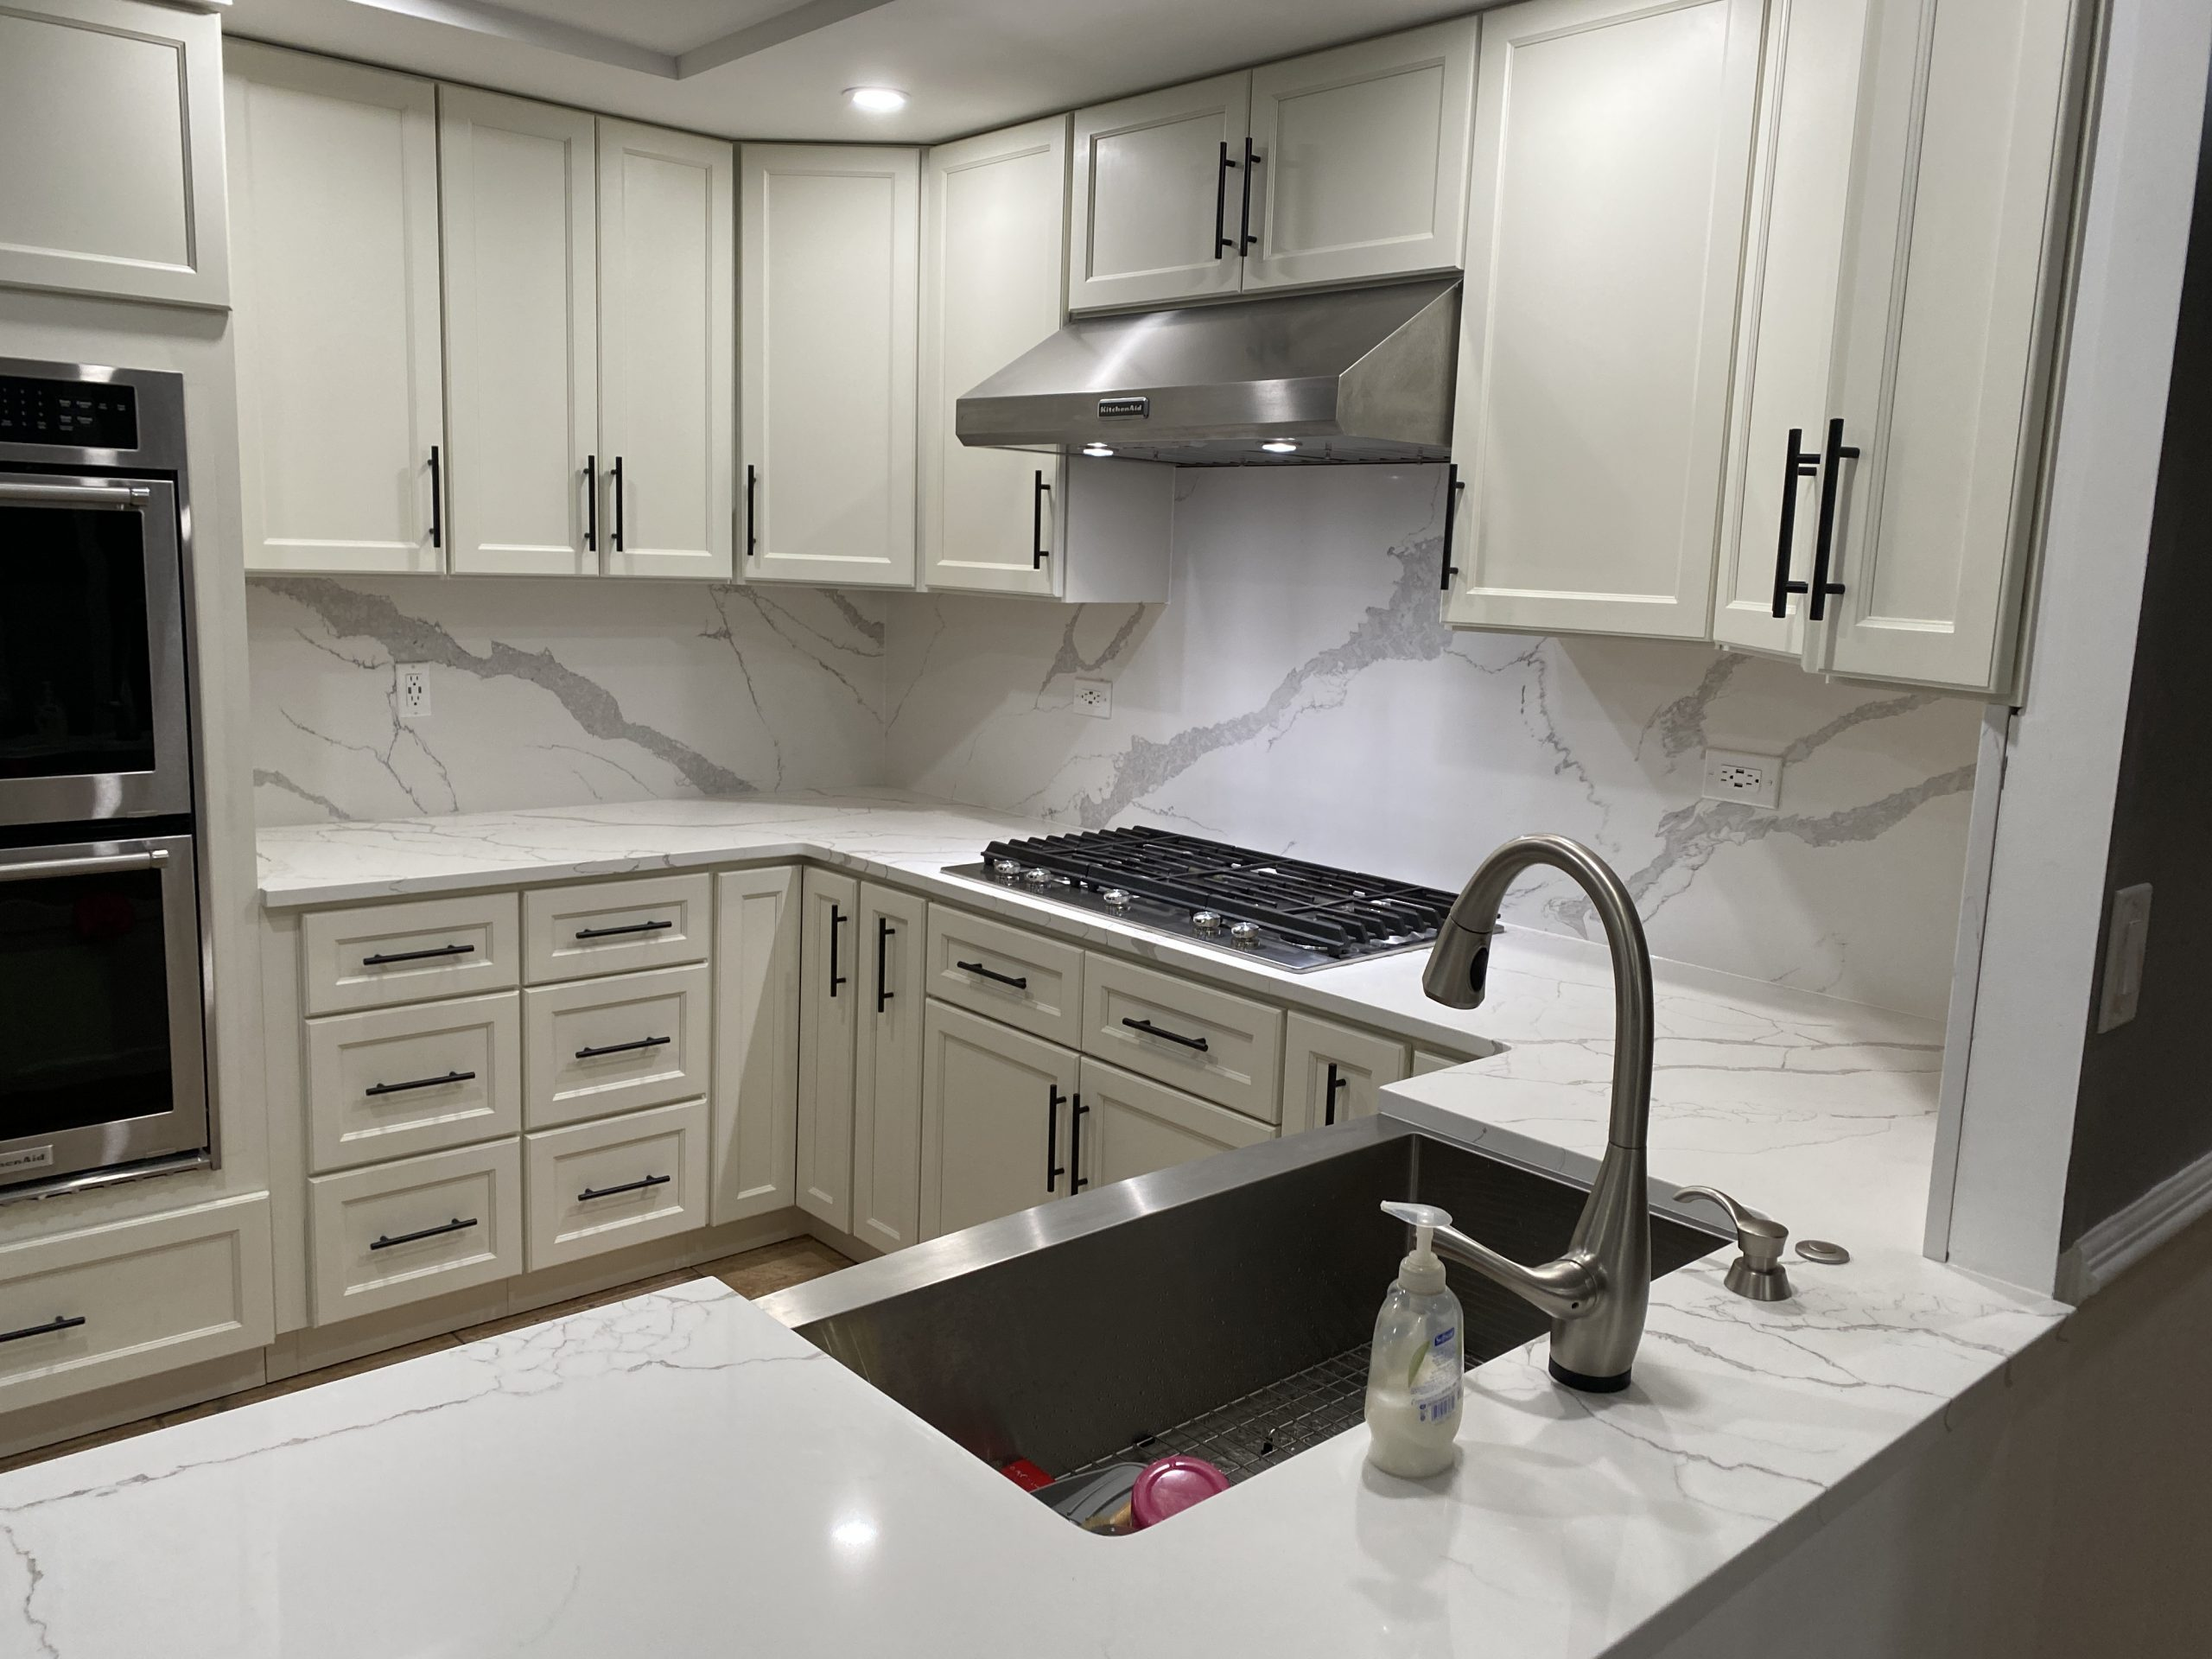 The Plus Sides of Remodeling Your Kitchen